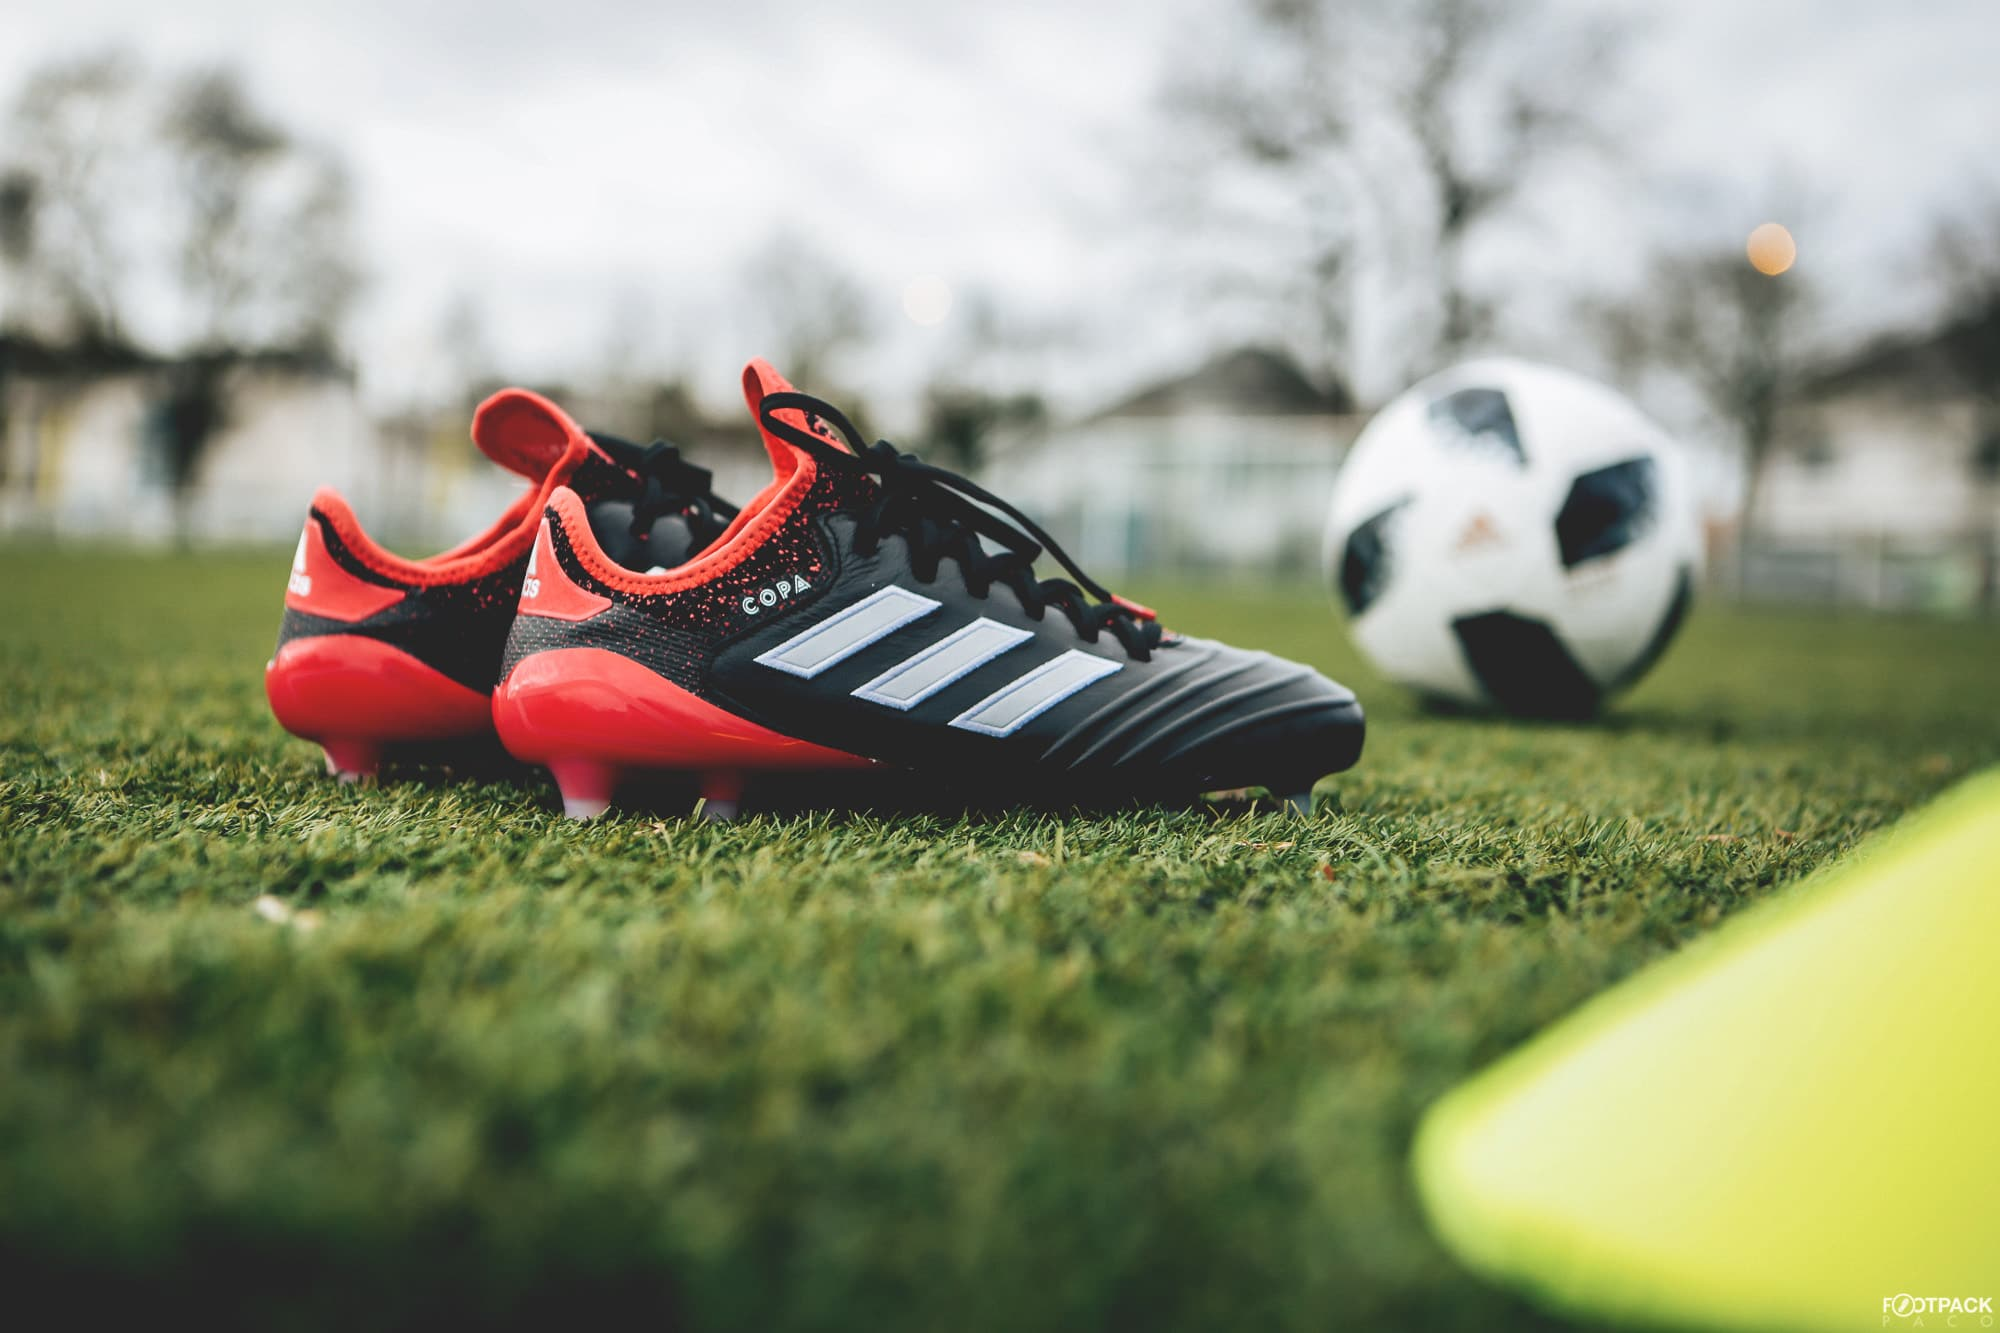 chaussure-football-adidas-copa18-cold-blooded-3